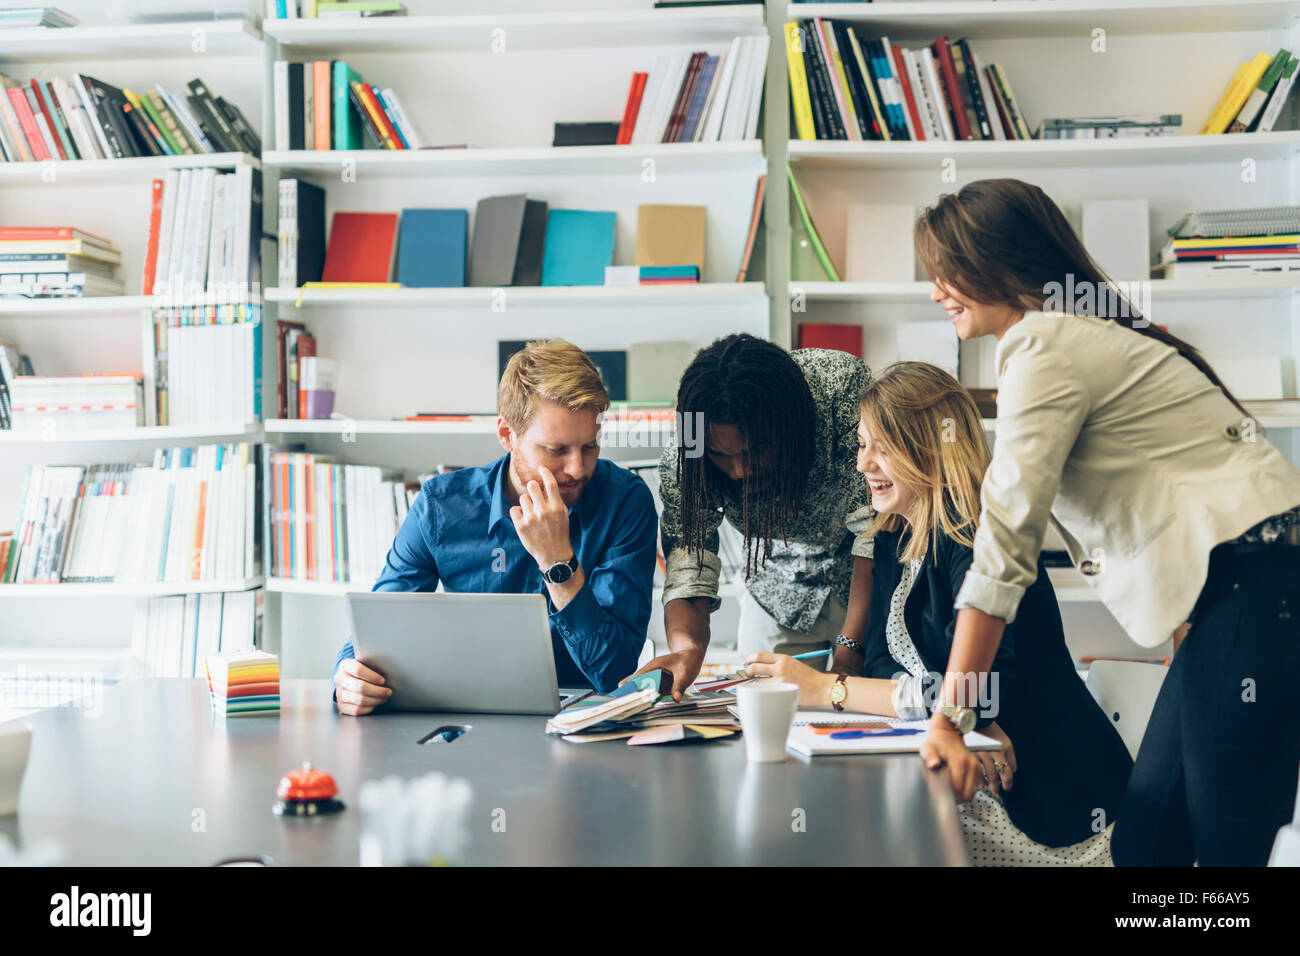 Brainstorming event between colleagues at work in office - Stock Image